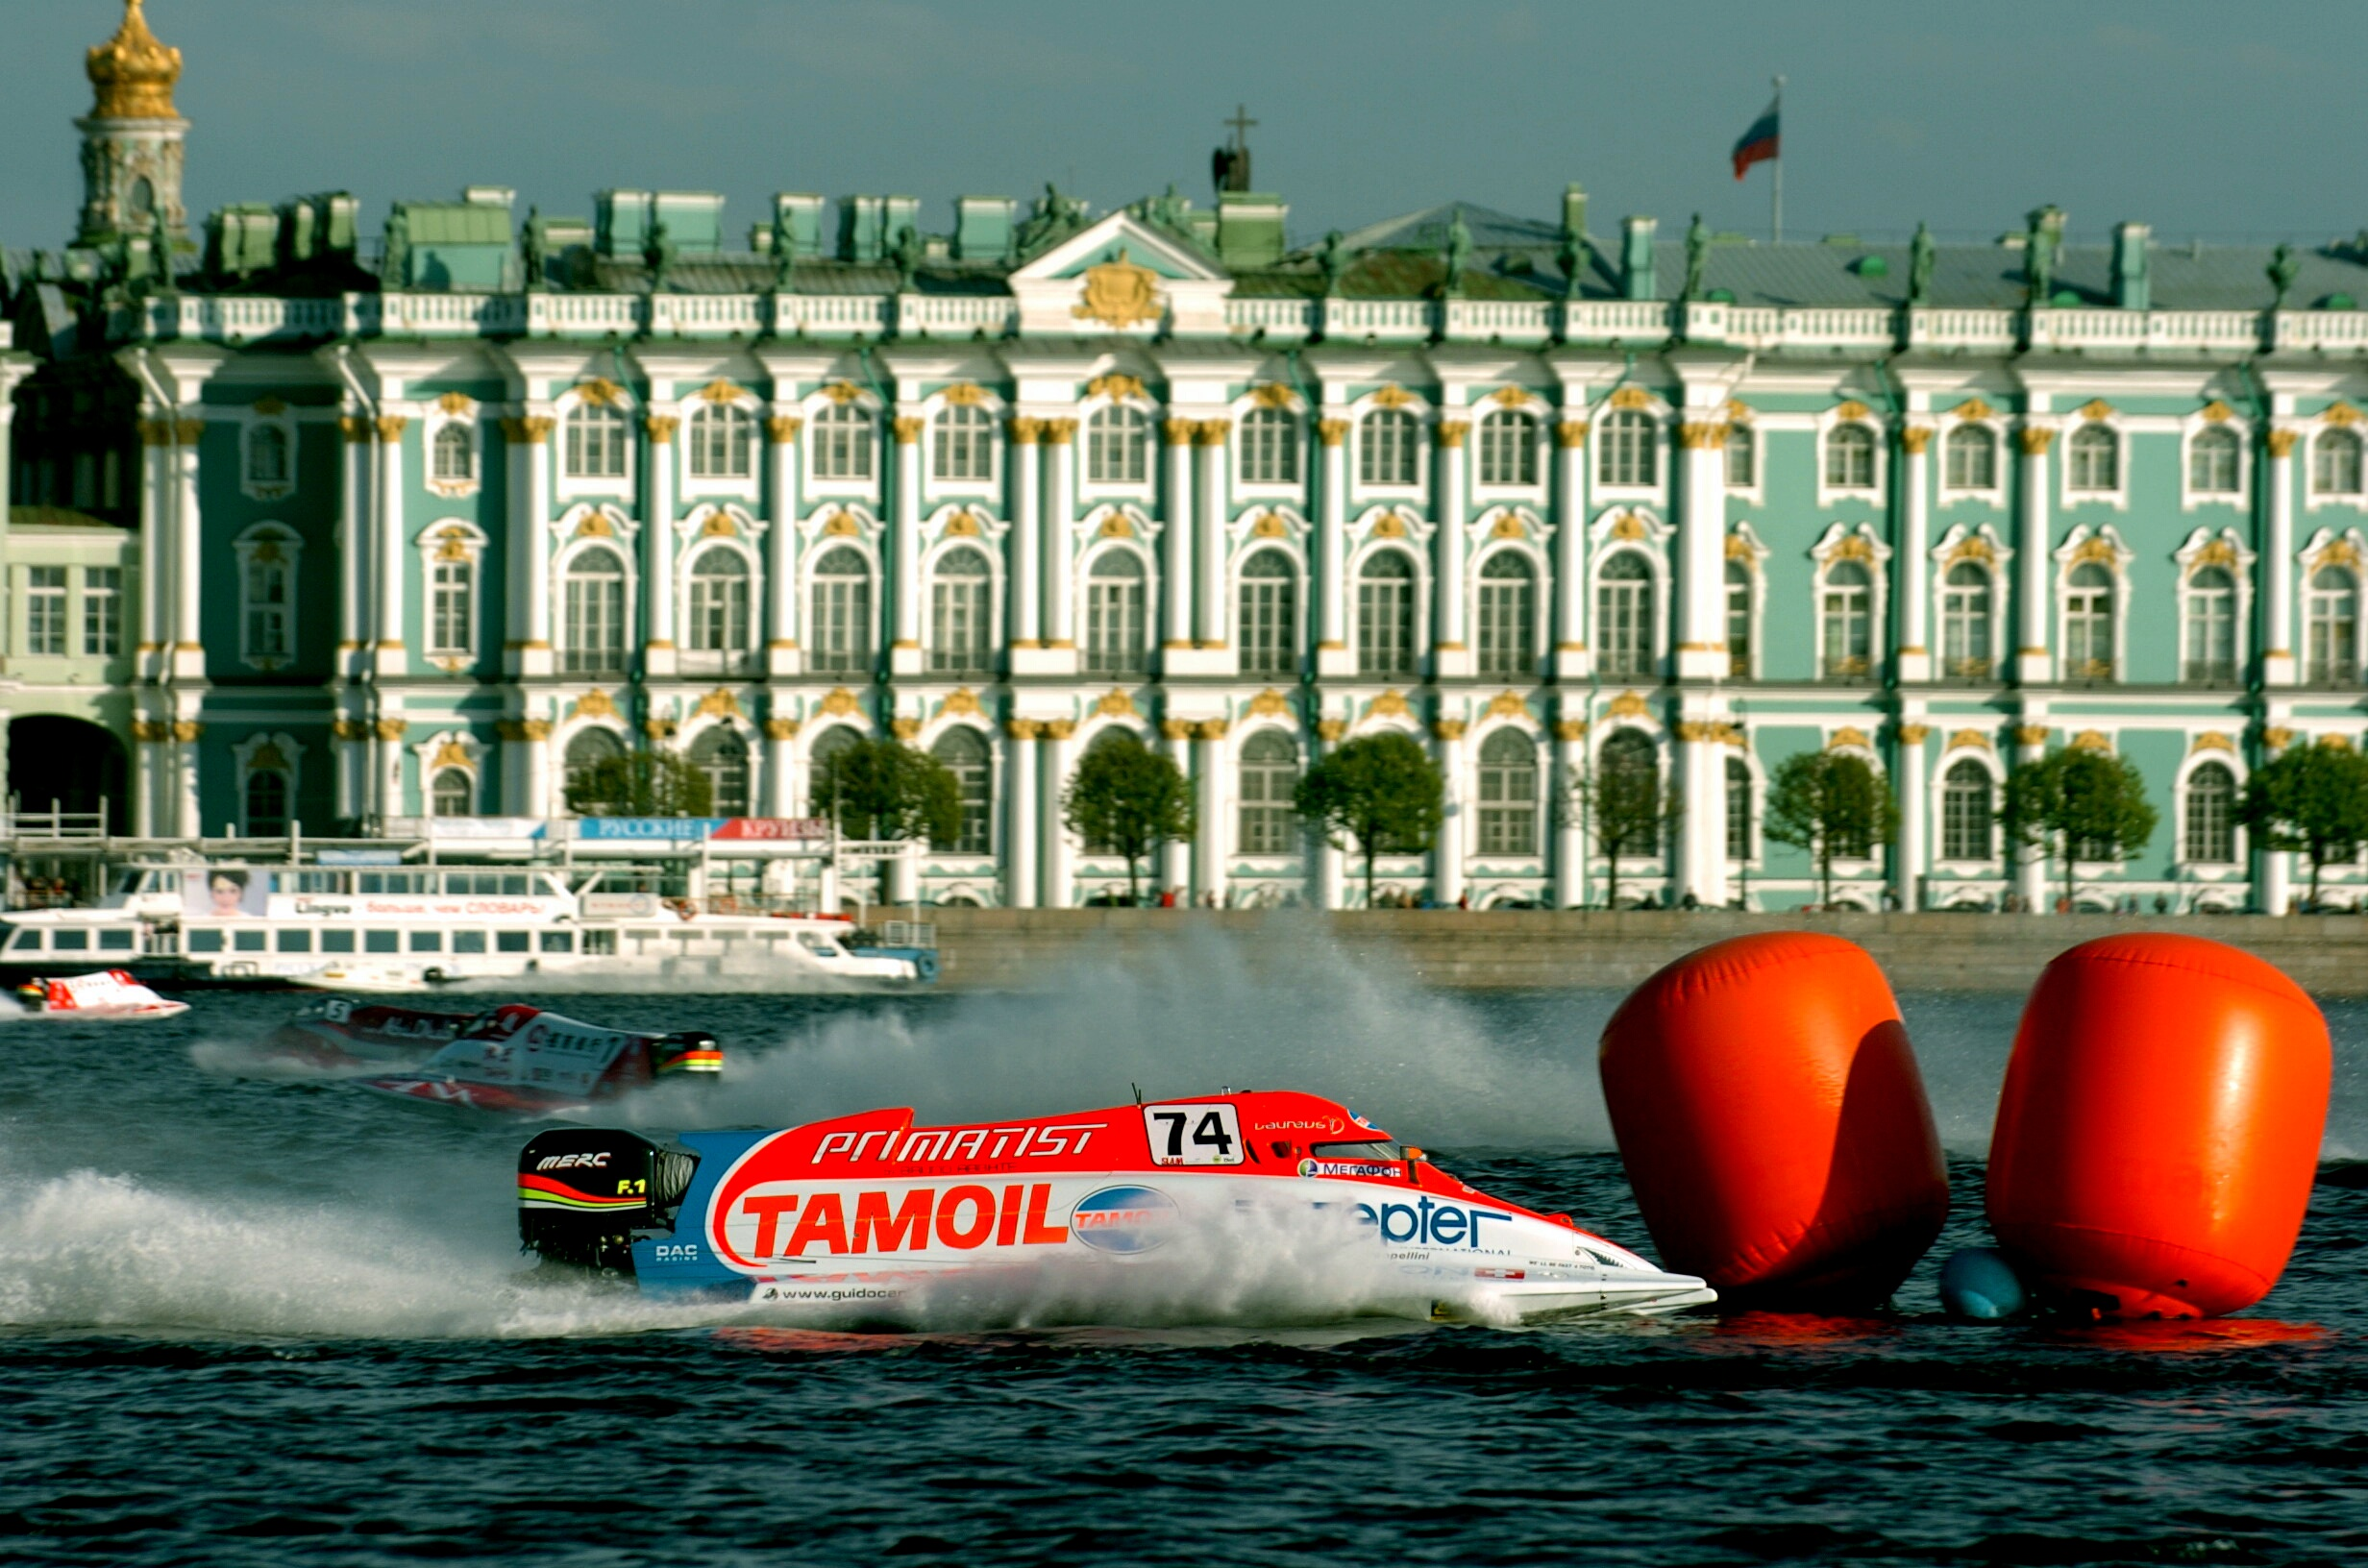 St Peterburg - Russia - 13 June, 2008 - First  free practice for the Russian Grand Prix on Neva River in St Peterburg. In this photo Guido Cappellini of Team Tamoil. This GP is the 4th leg of the UIM F1 Powerboat World Championship 2008. Picture by Vittorio Ubertone/Idea Marketing.